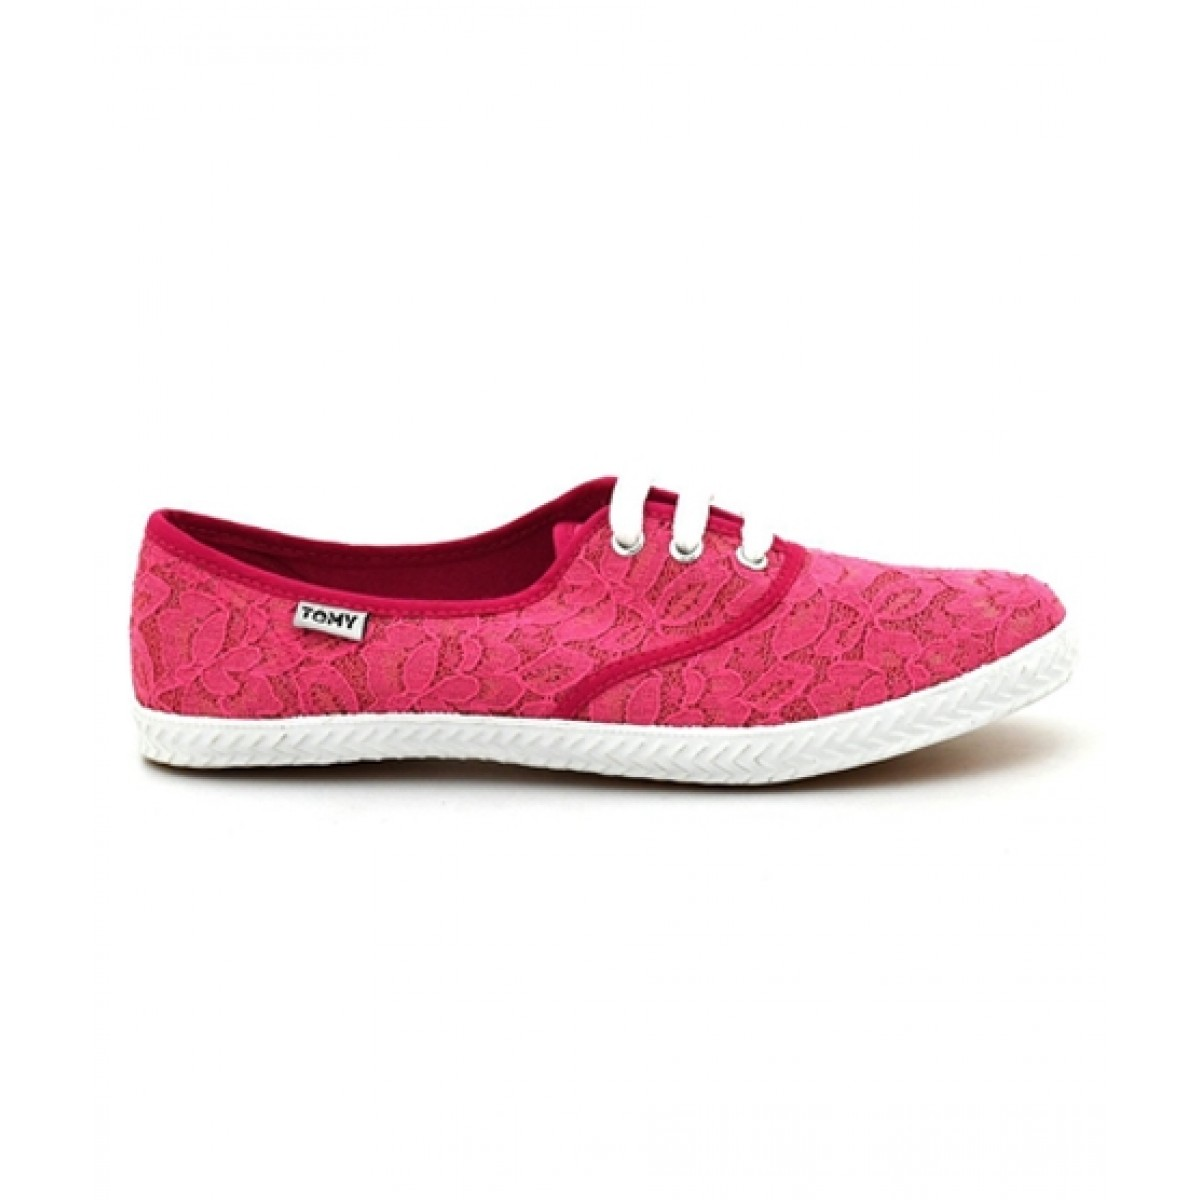 Bata Tommy Takkies Shoes For Women (589-5063)